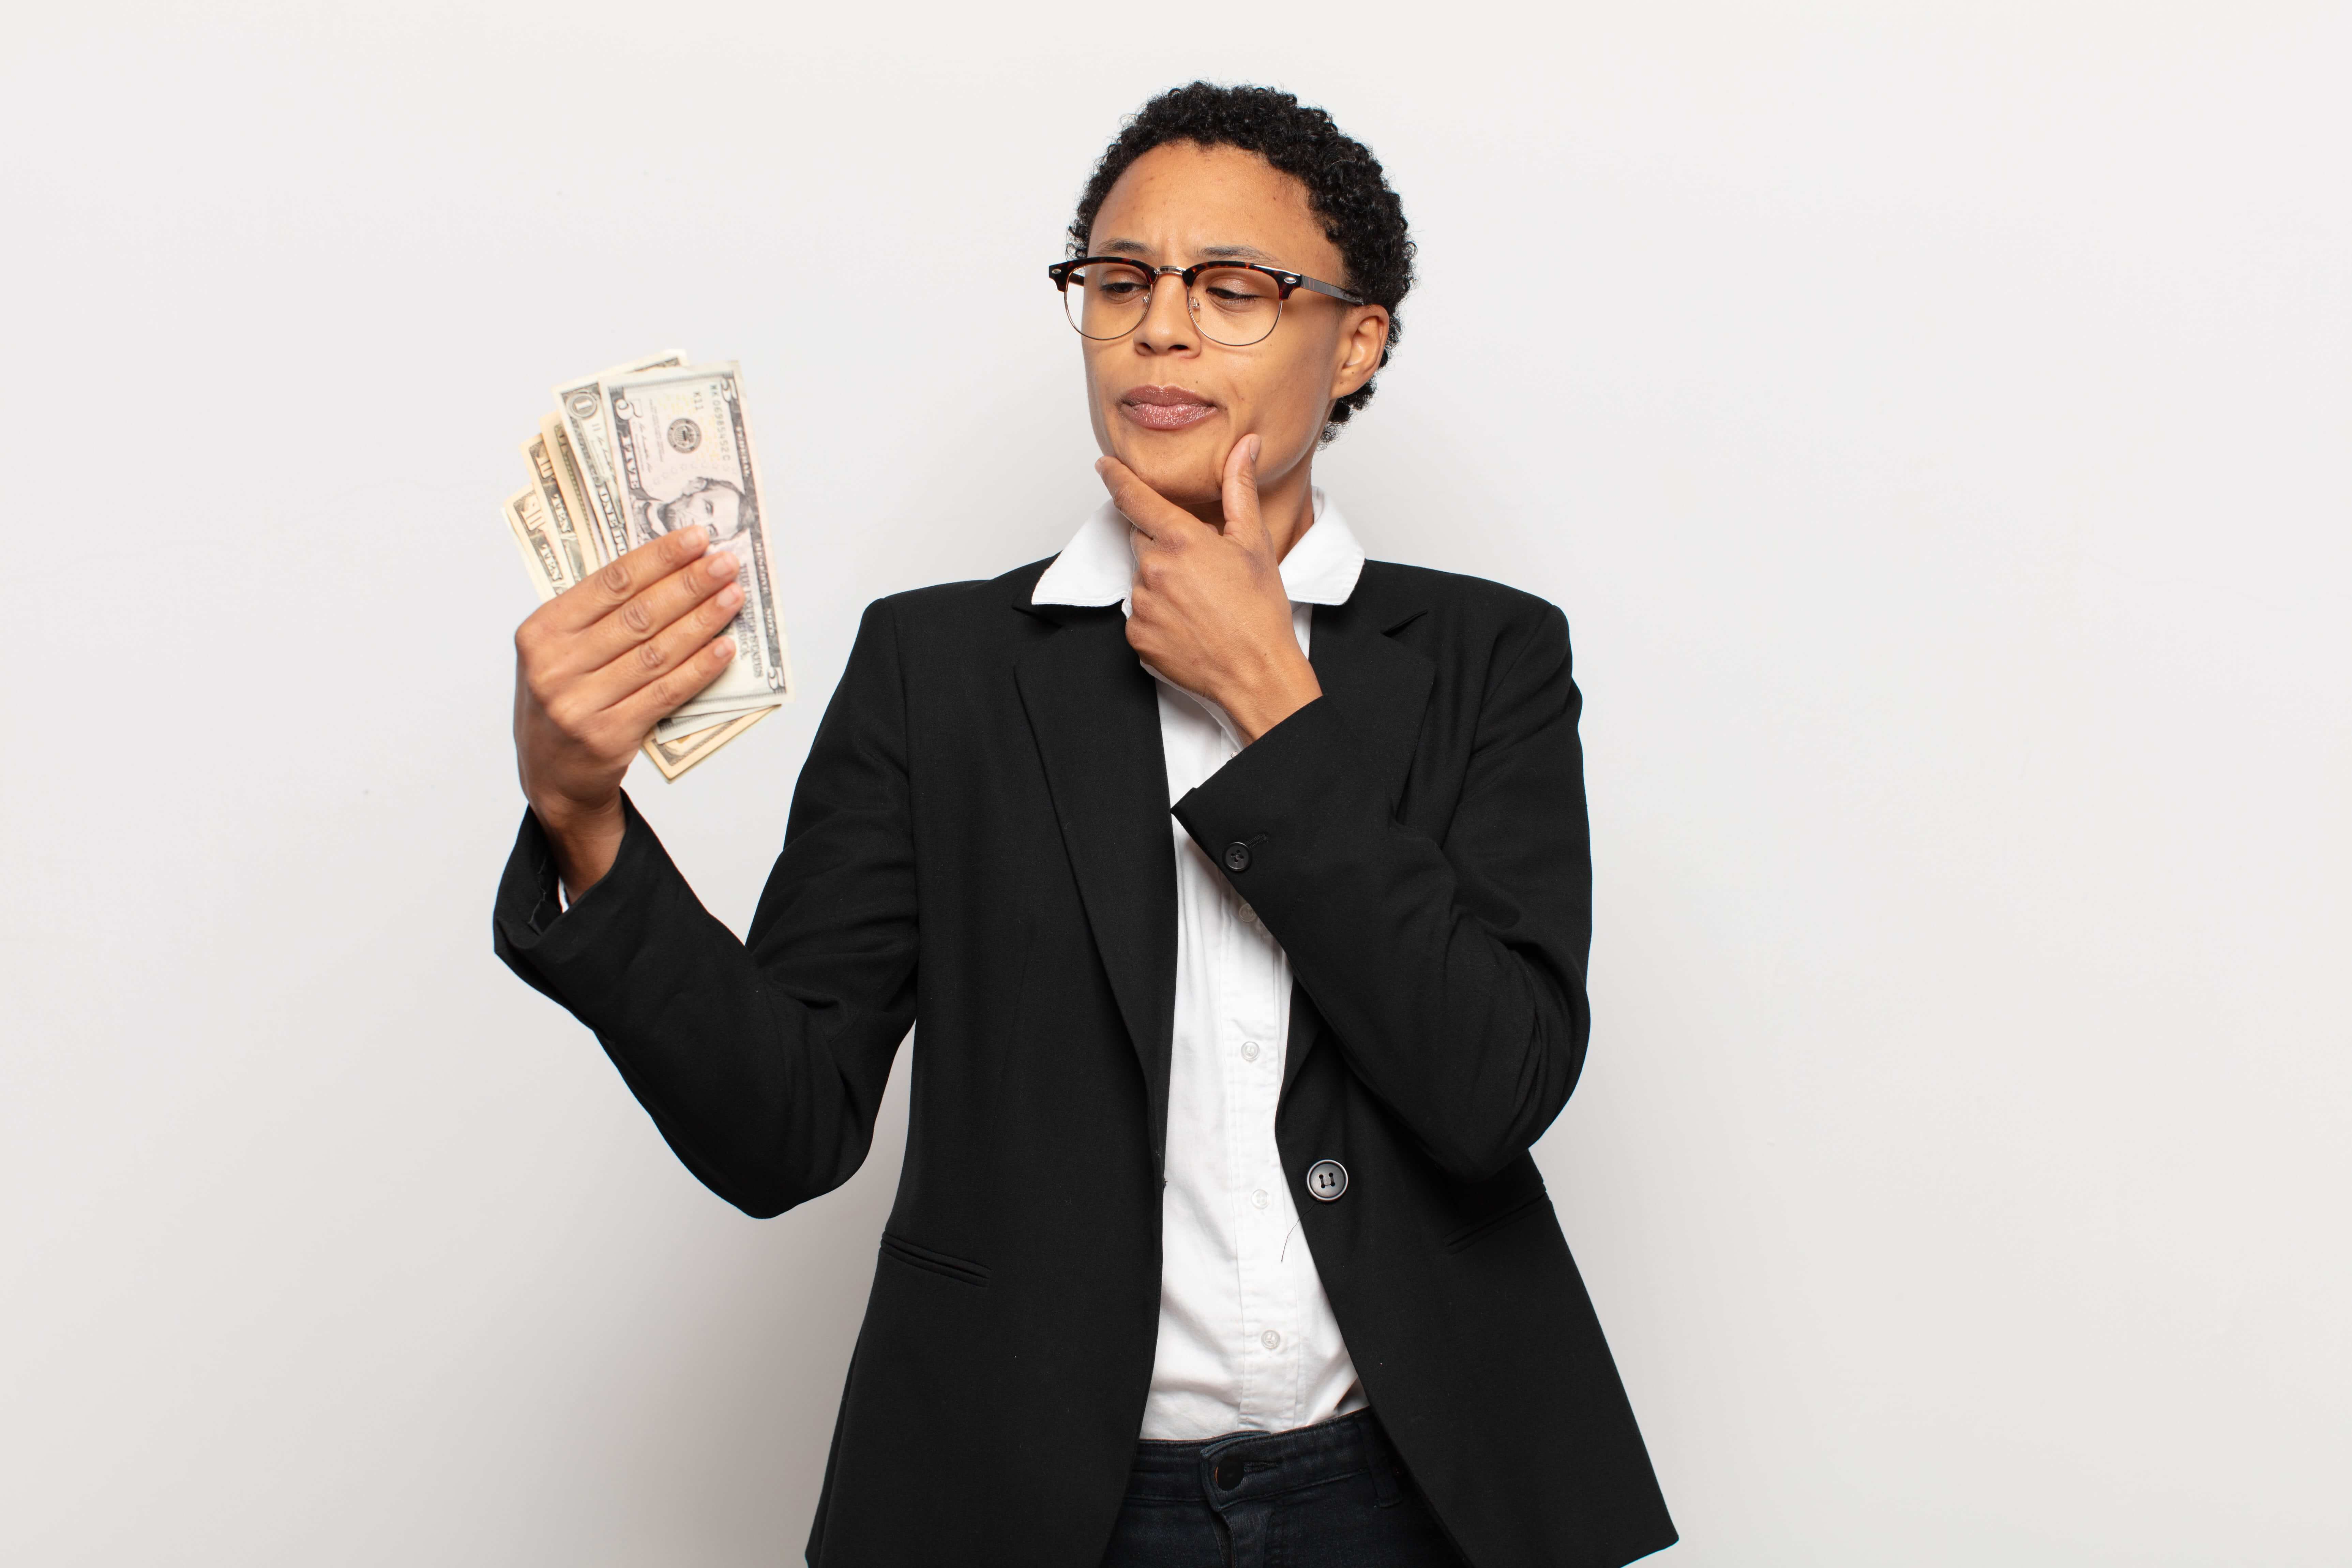 1 Hour Payday Loans For 200 Online Fast